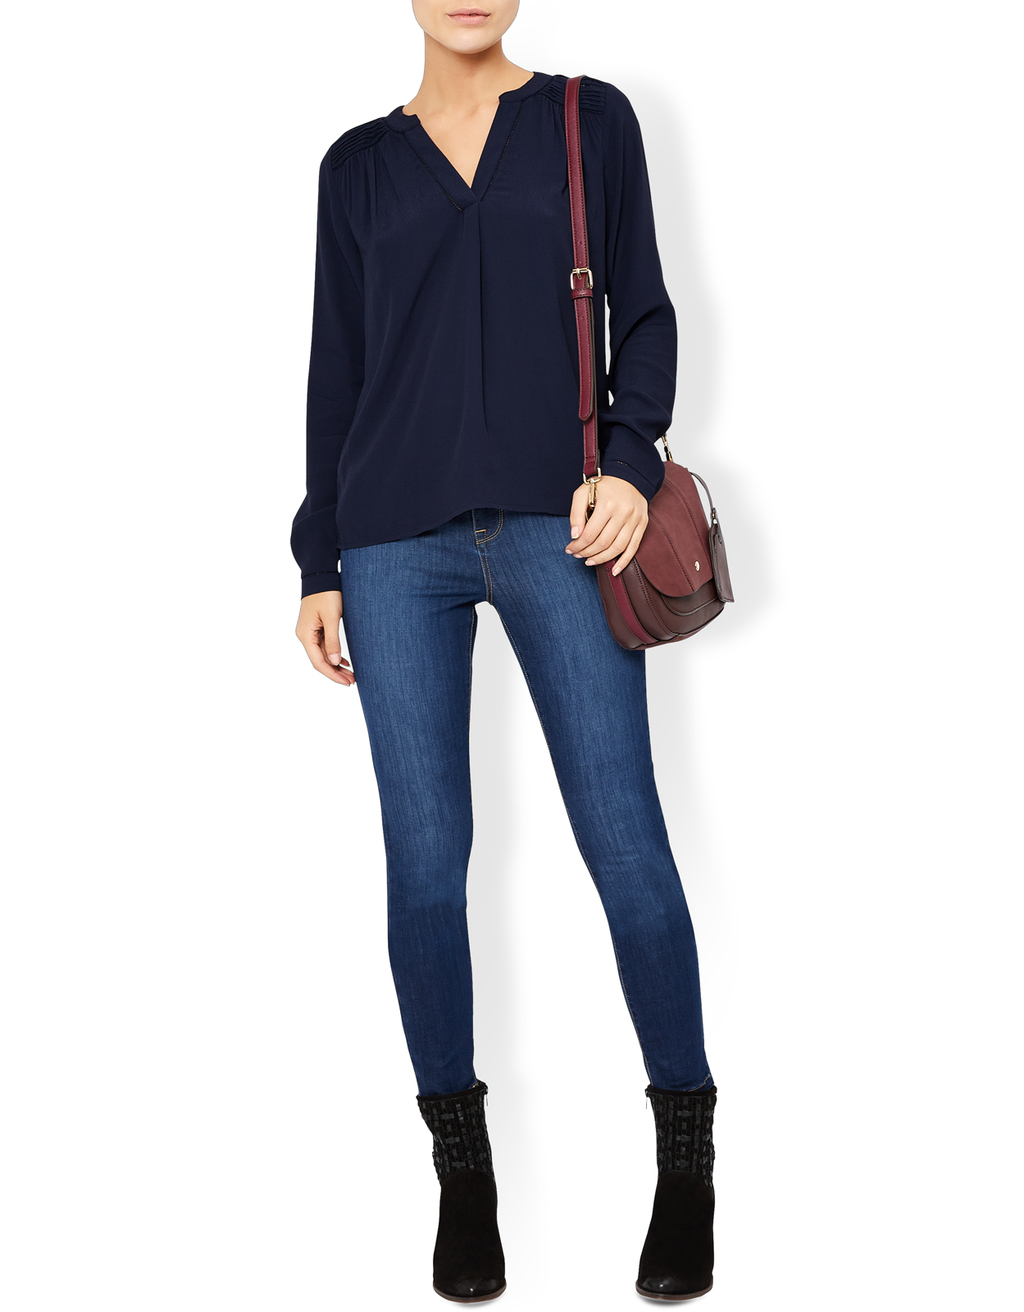 Alexis Blouse - neckline: v-neck; pattern: plain; style: blouse; predominant colour: navy; occasions: casual; length: standard; fibres: silk - 100%; fit: body skimming; sleeve length: long sleeve; sleeve style: standard; texture group: silky - light; pattern type: fabric; season: s/s 2016; wardrobe: basic